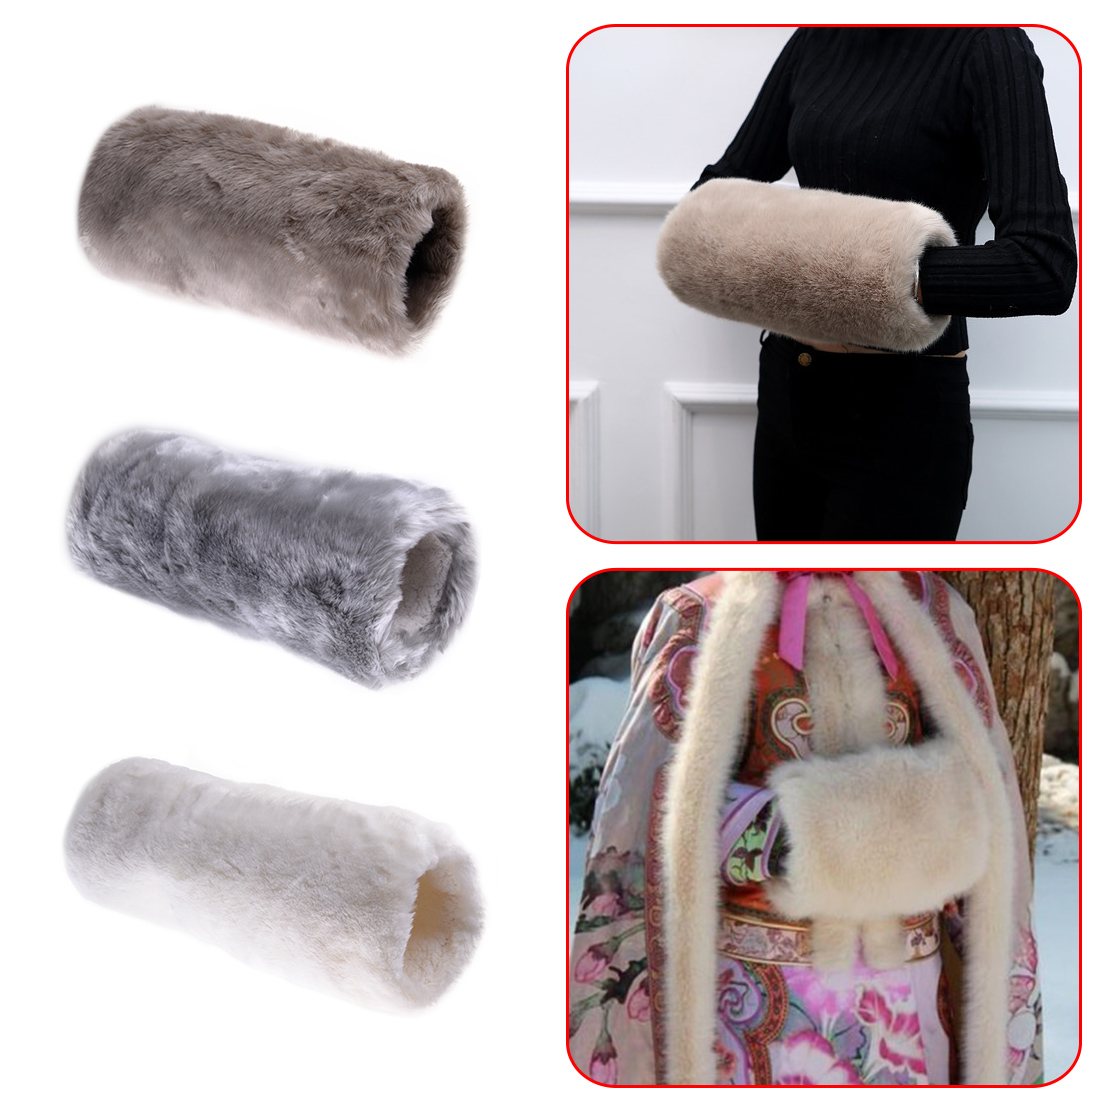 New Fashion Women Gloves Luxurious Super Soft Faux Fur Muff Hand Warmer Challenge Glove Mittens Winter Necessary